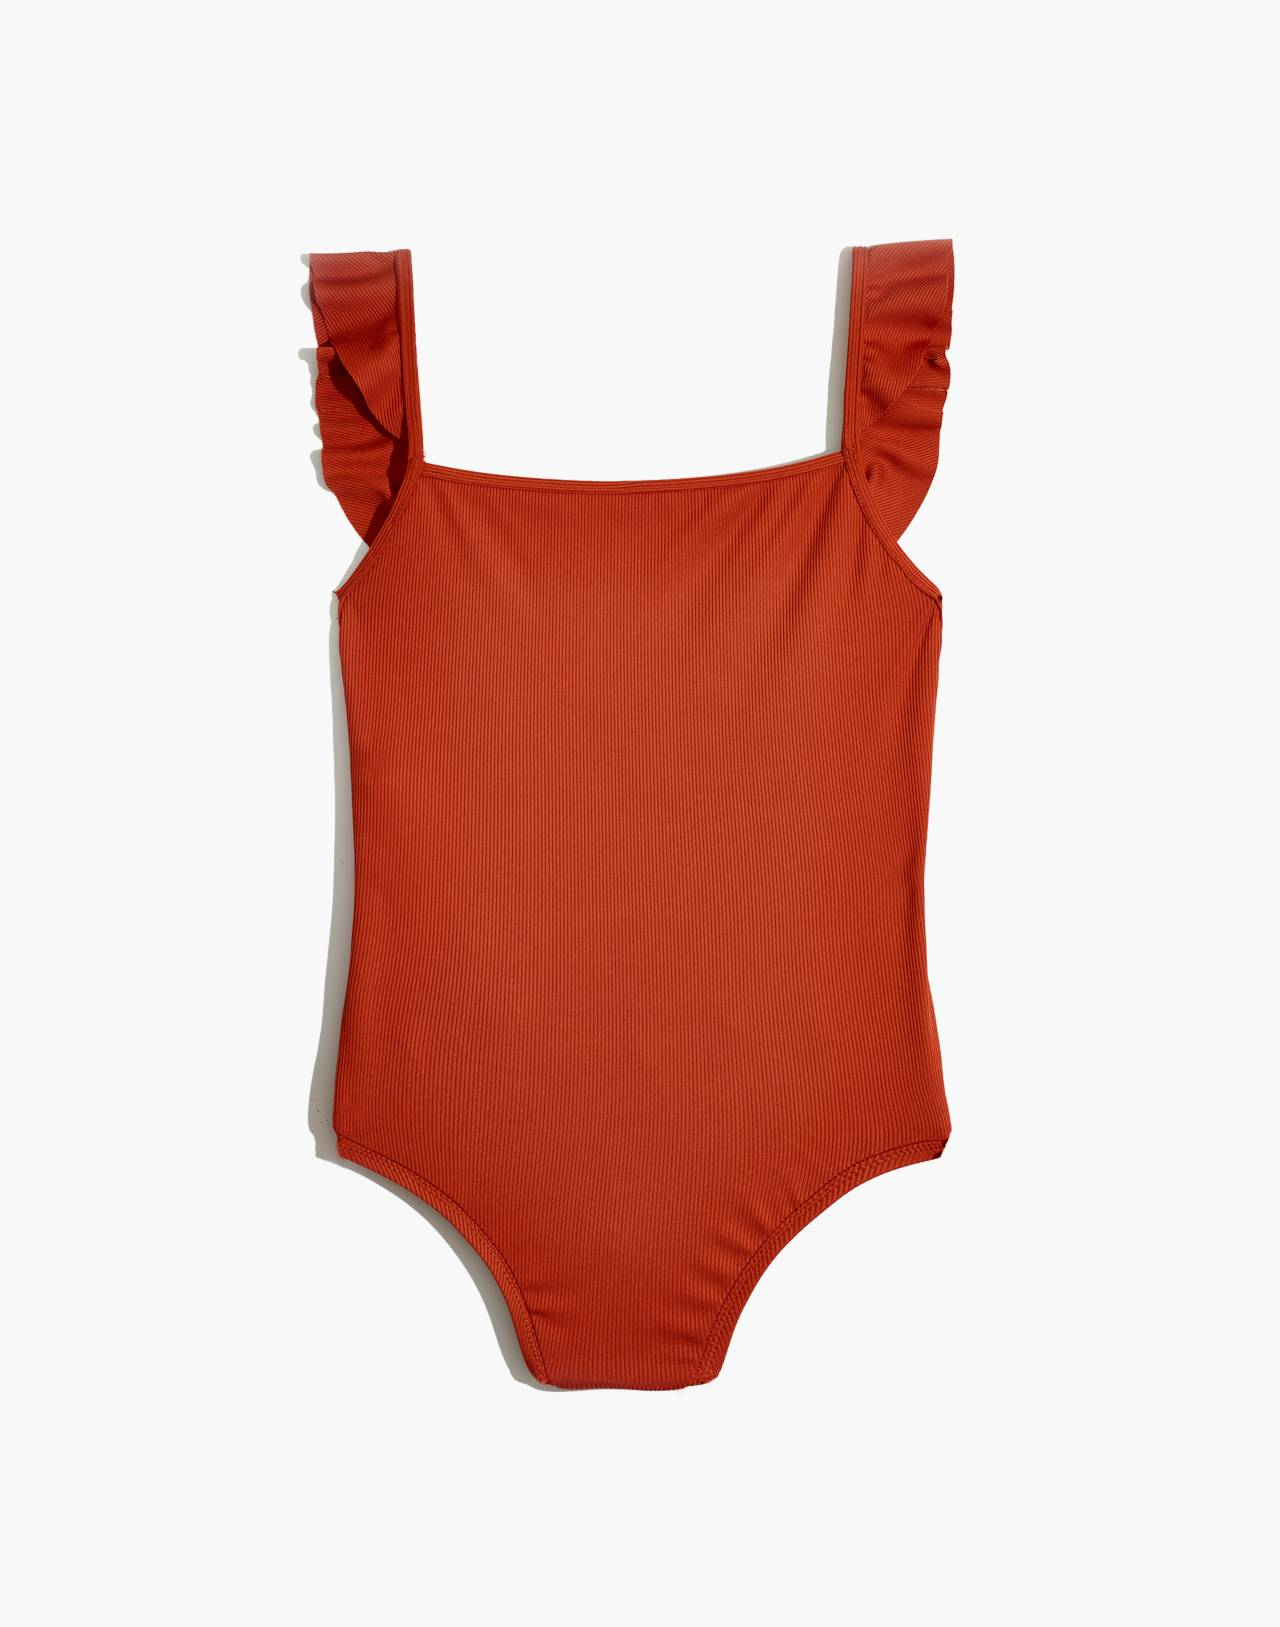 Madewell Second Wave Ribbed Ruffle-Strap One-Piece Swimsuit in afterglow red image 4